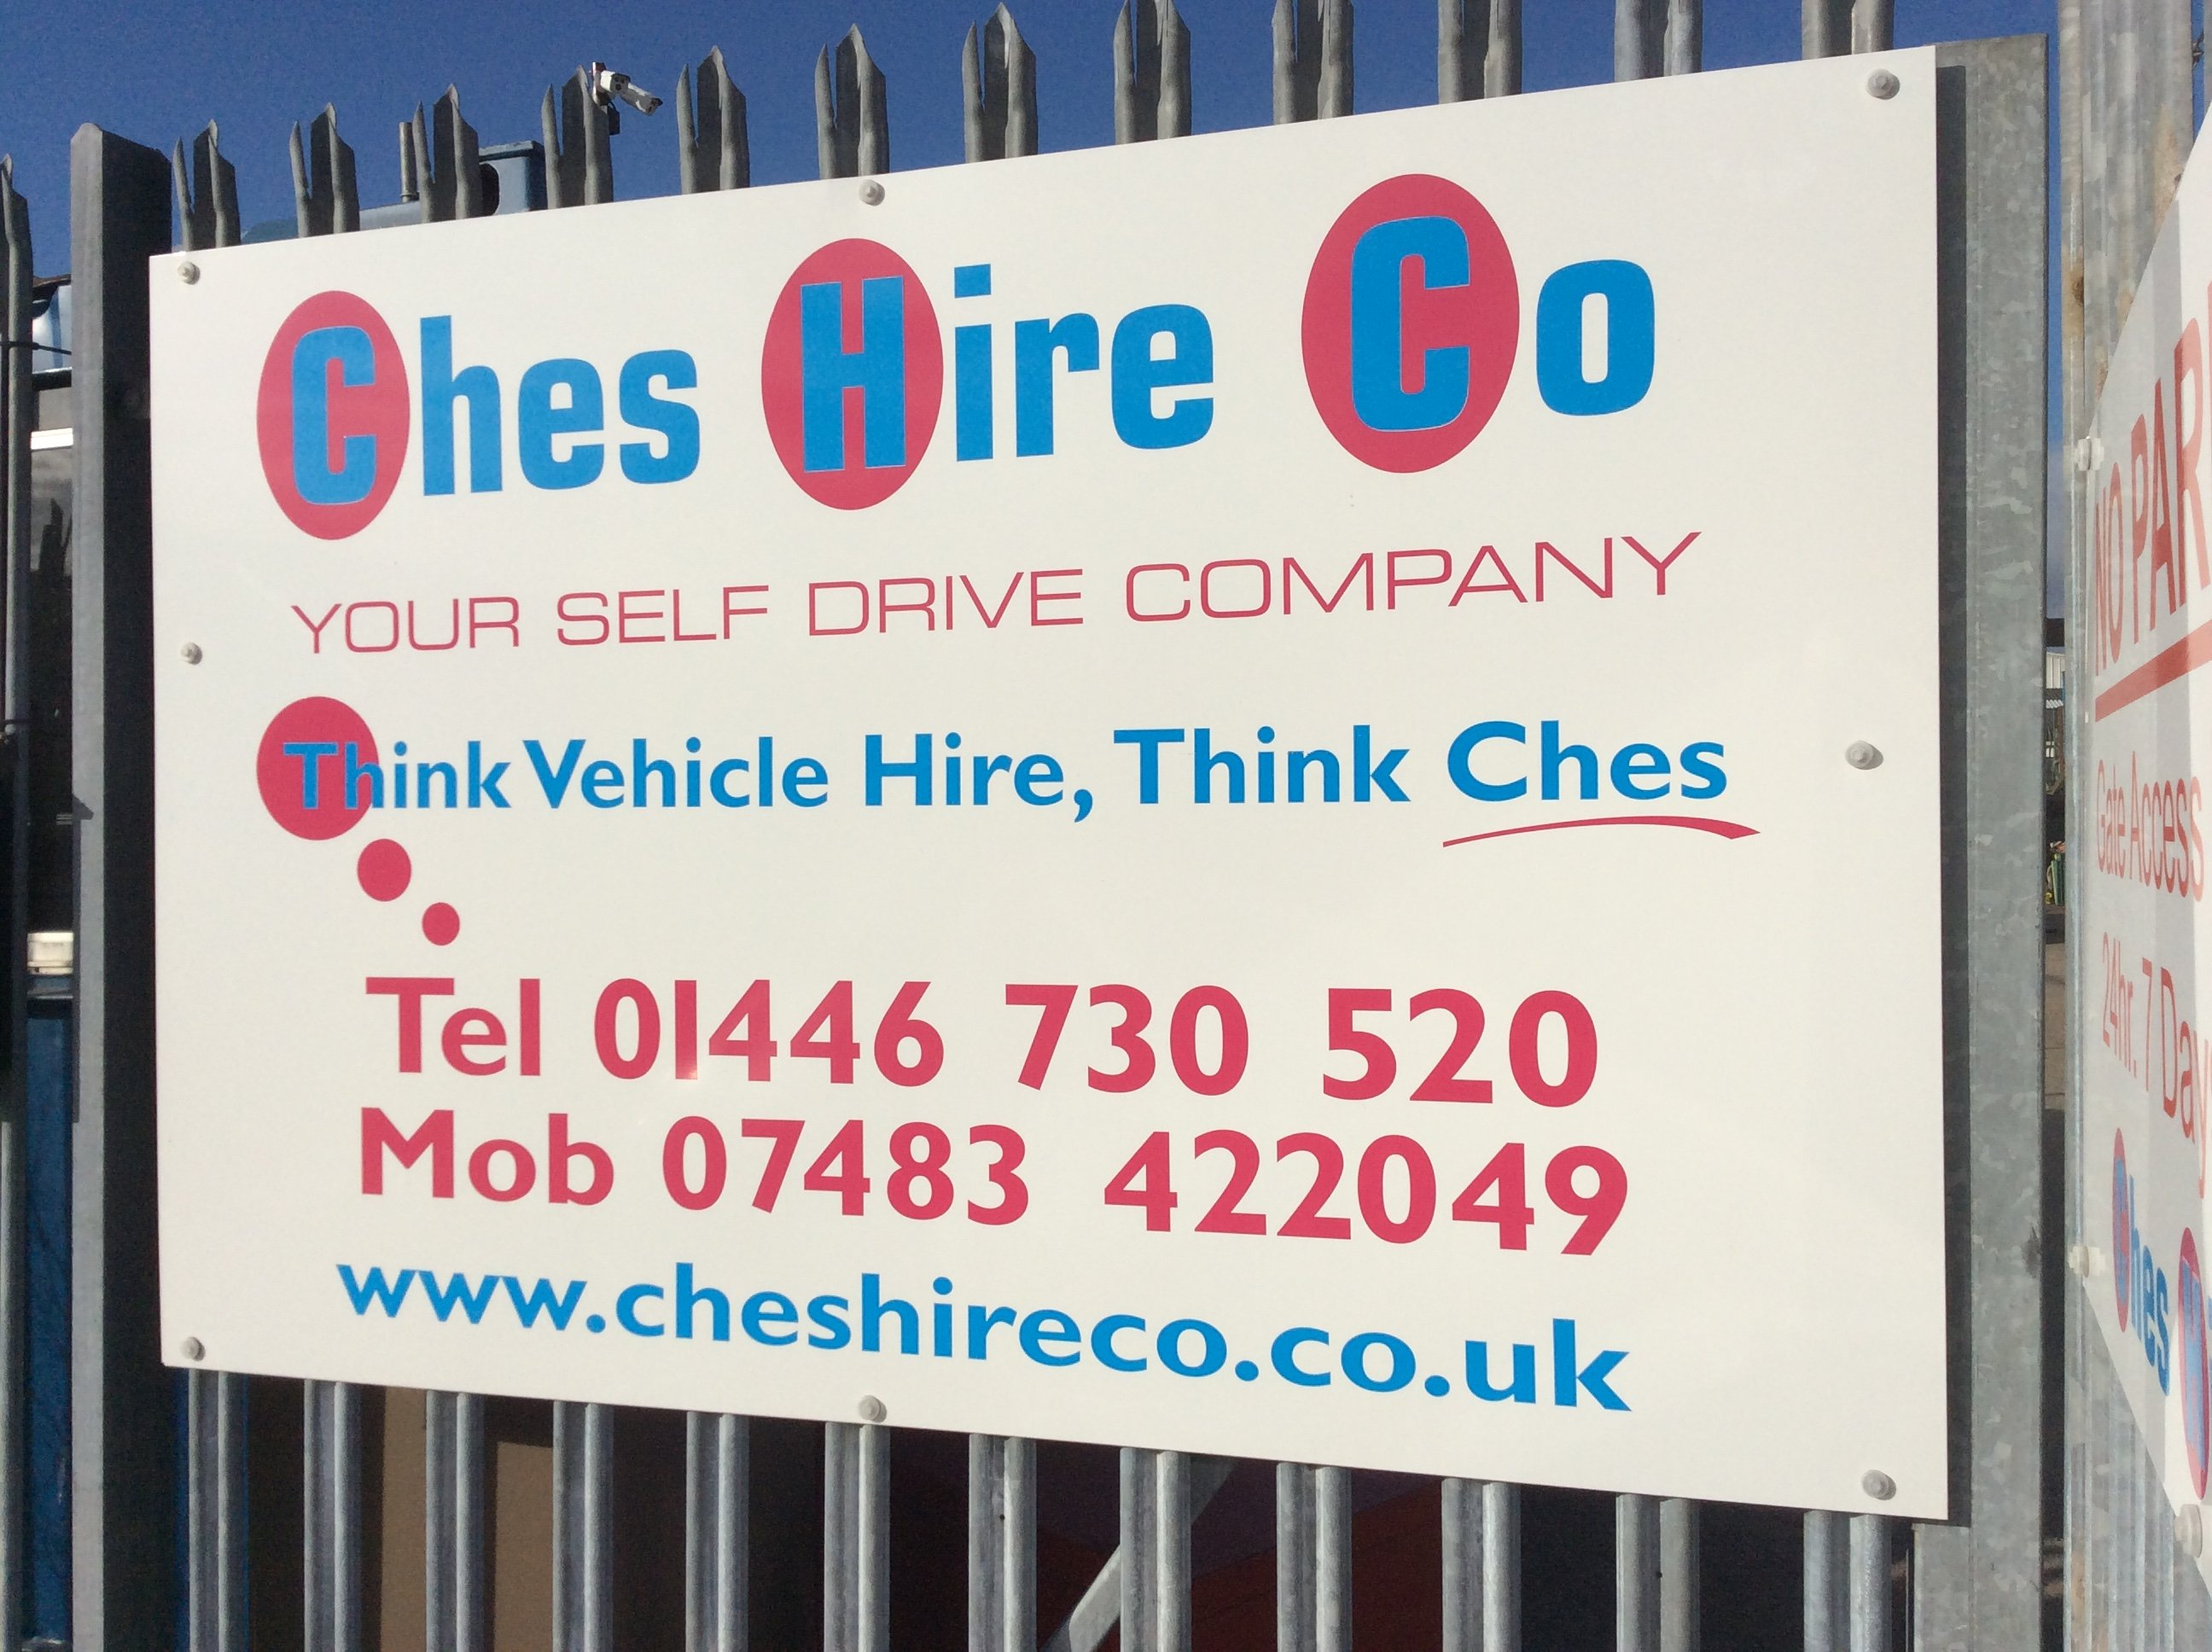 Ches Hire Co hoarding